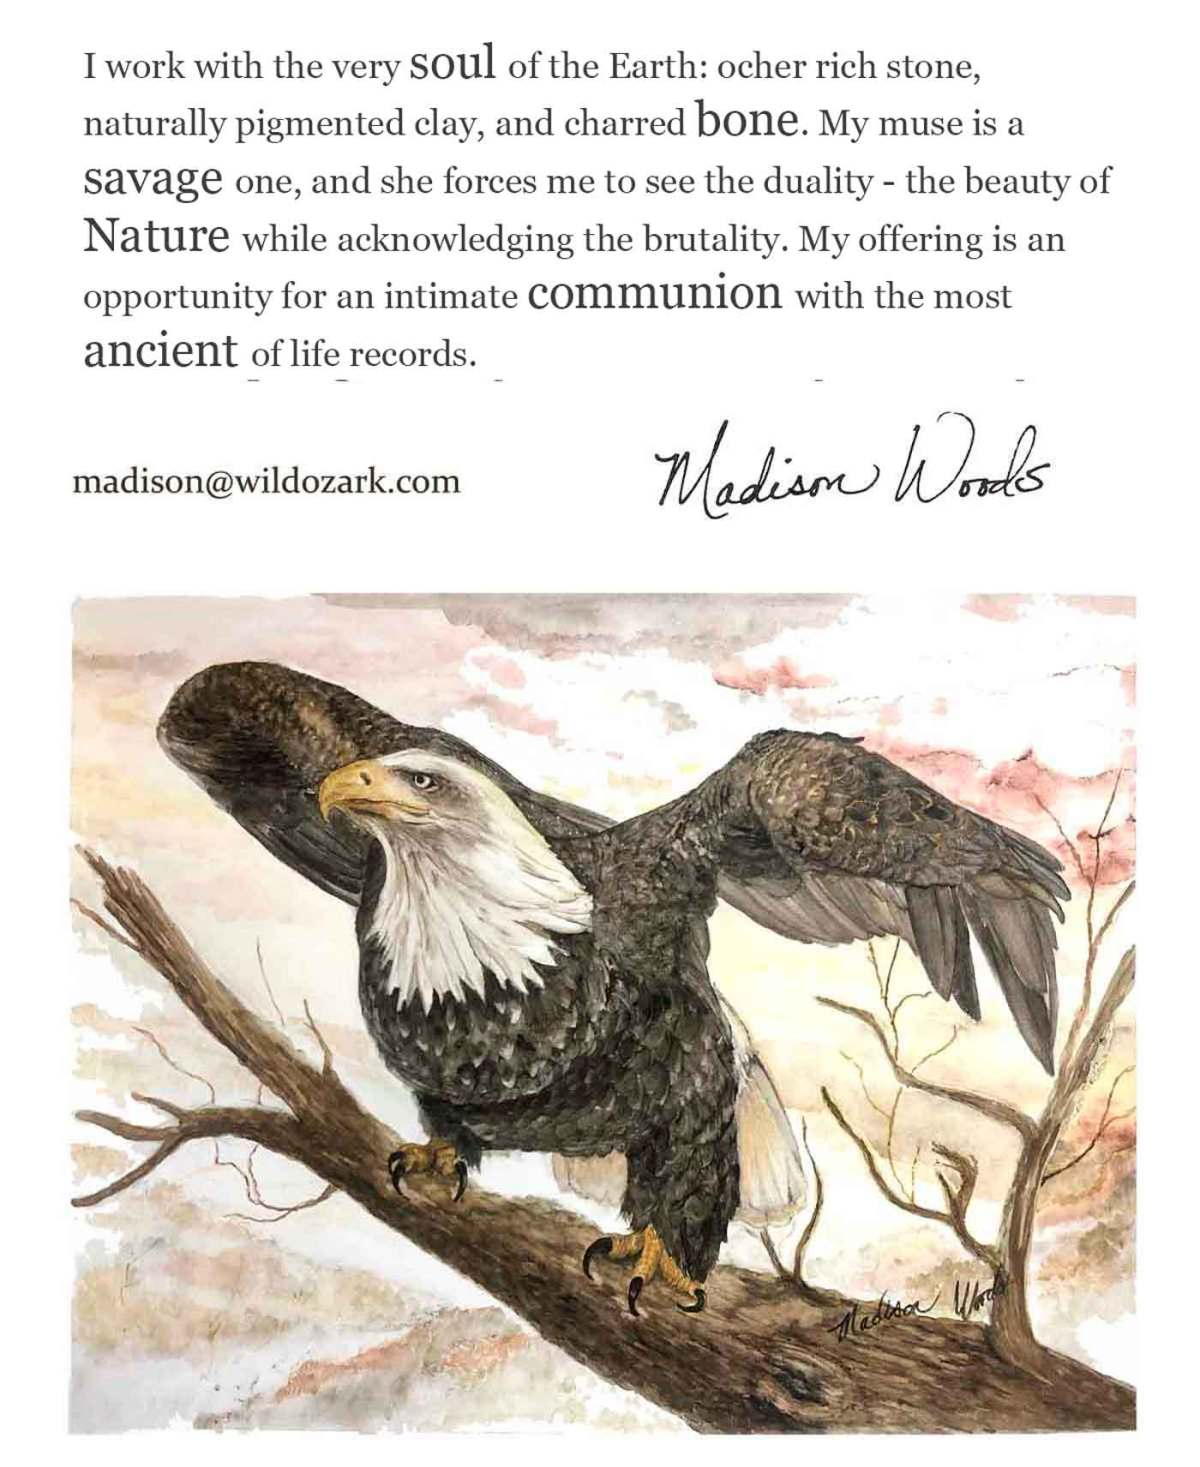 The artist statement for Madison Woods, wildlife and nature artist using Ozark pigments in her art.